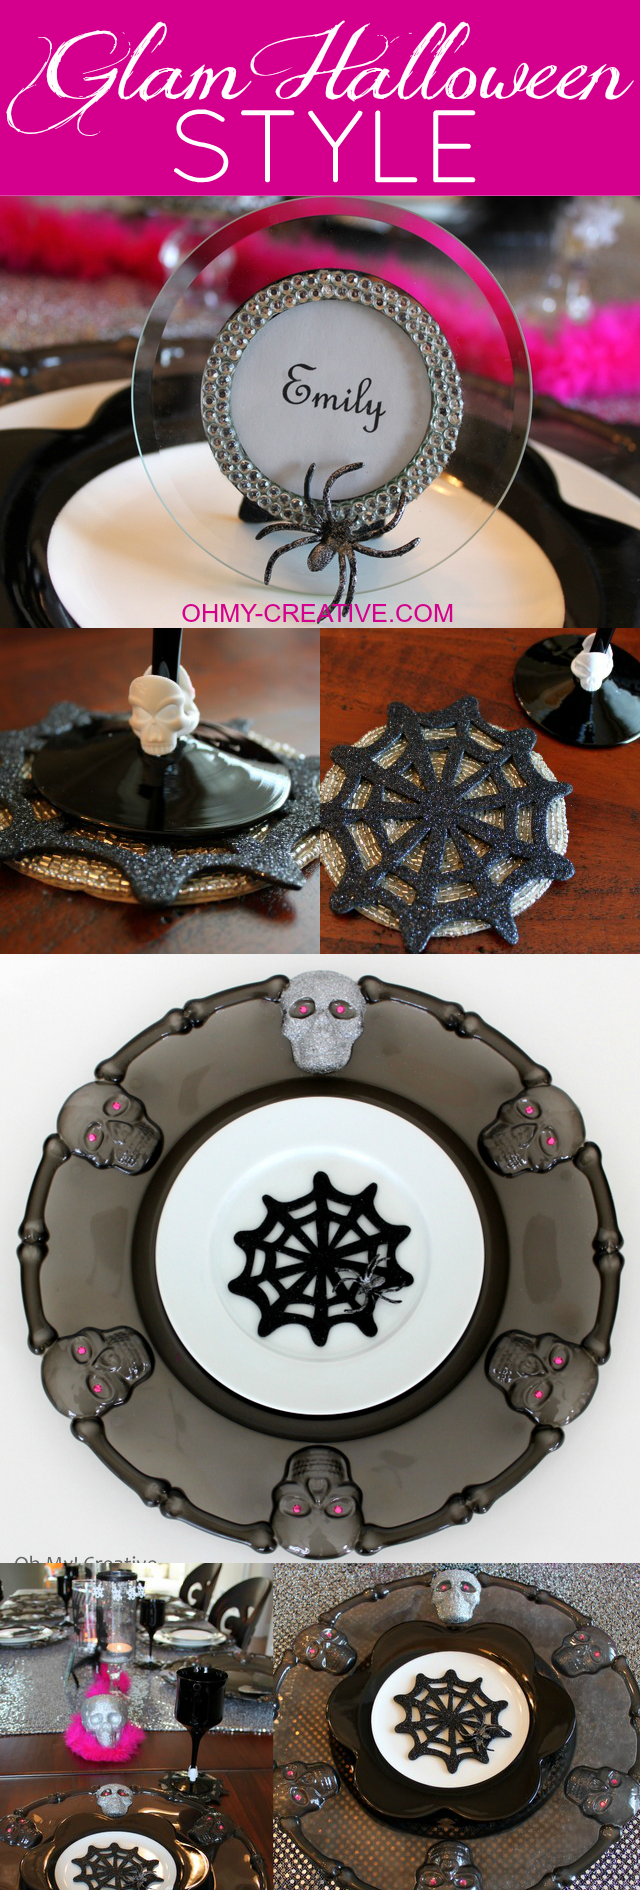 Simply crafty styling makes this Glam Halloween Table Setting a breeze! A few craft store finds along with these DIY Charger Plates made from dollar store platters, and you are all set for a glamorous Halloween bash! | OHMY-CREATIVE.COM